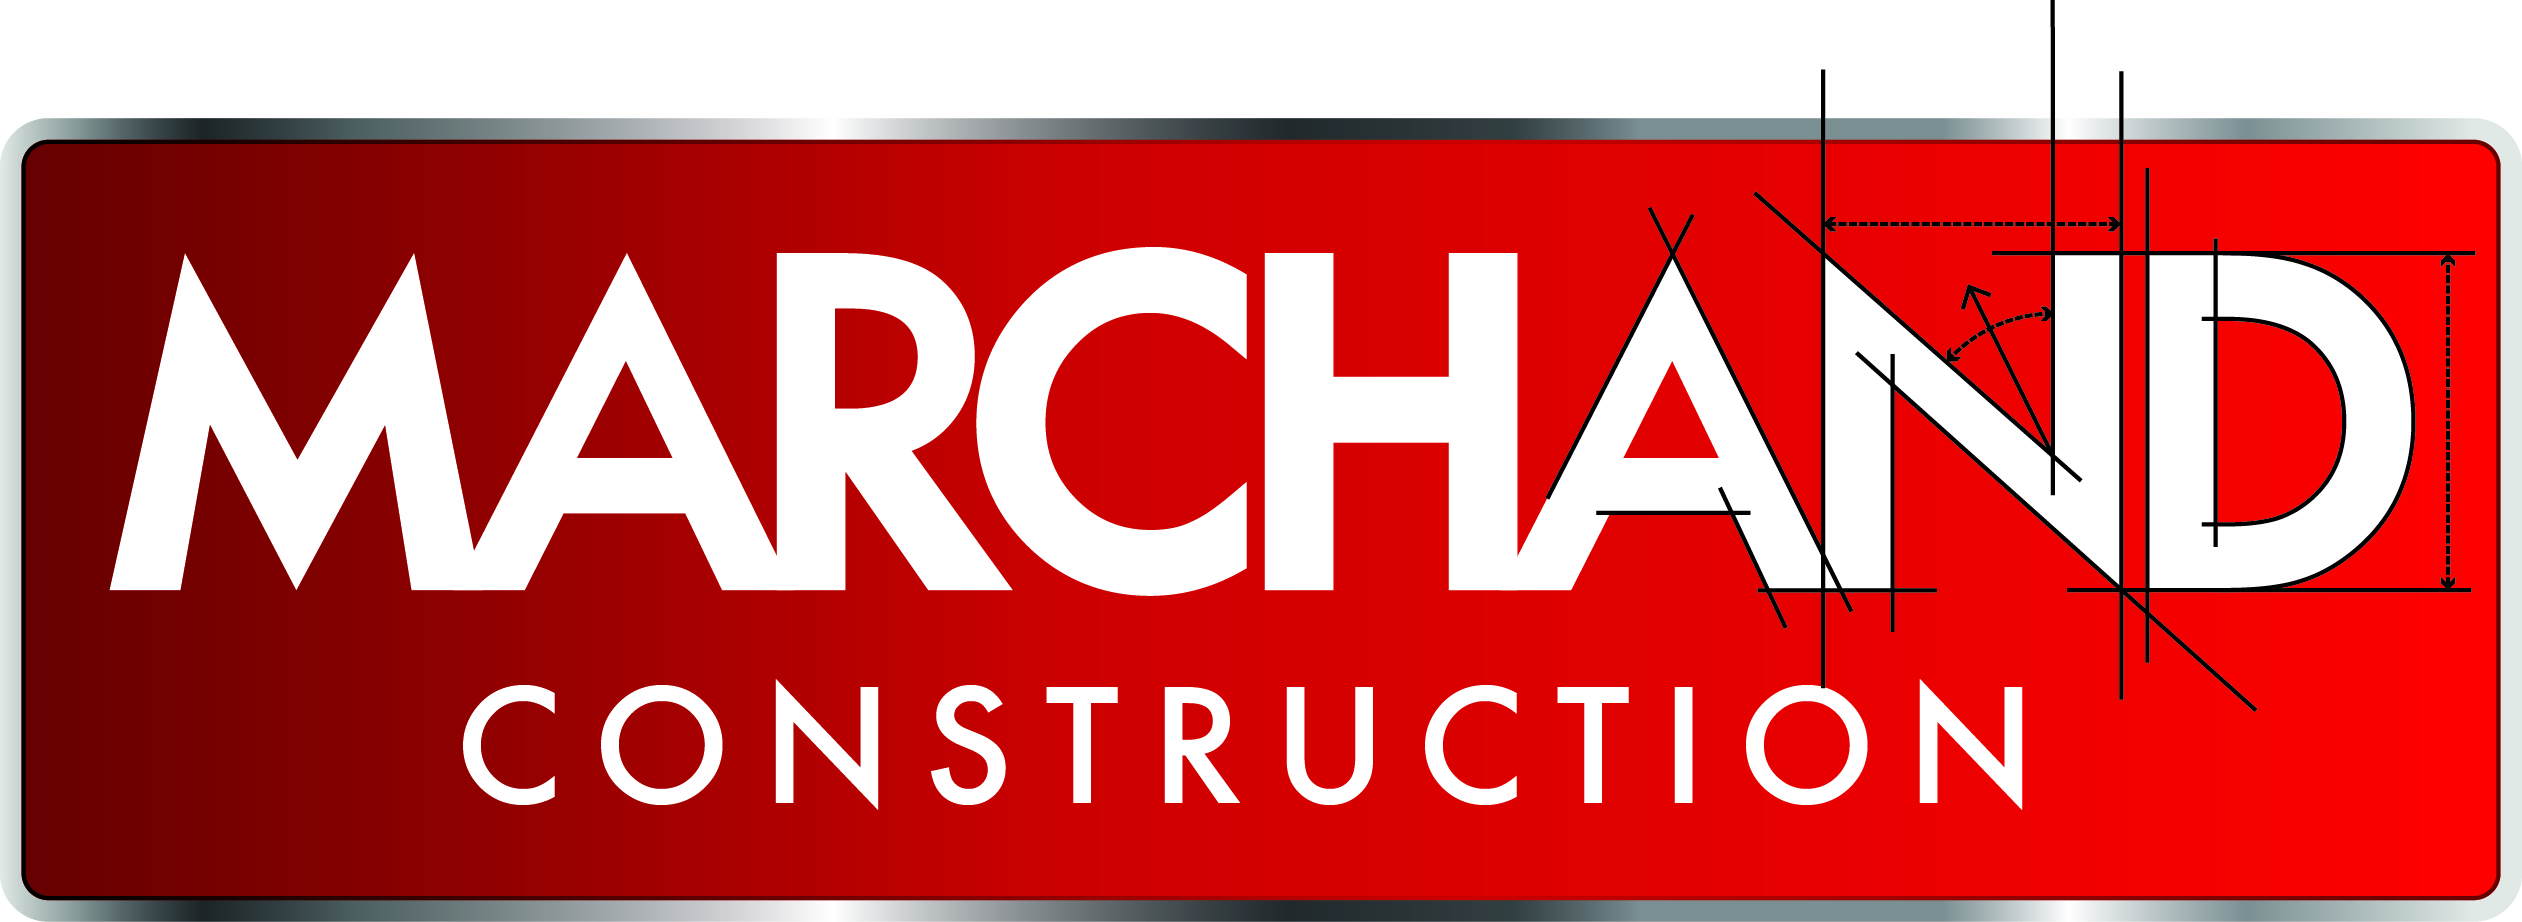 Marchand Construction